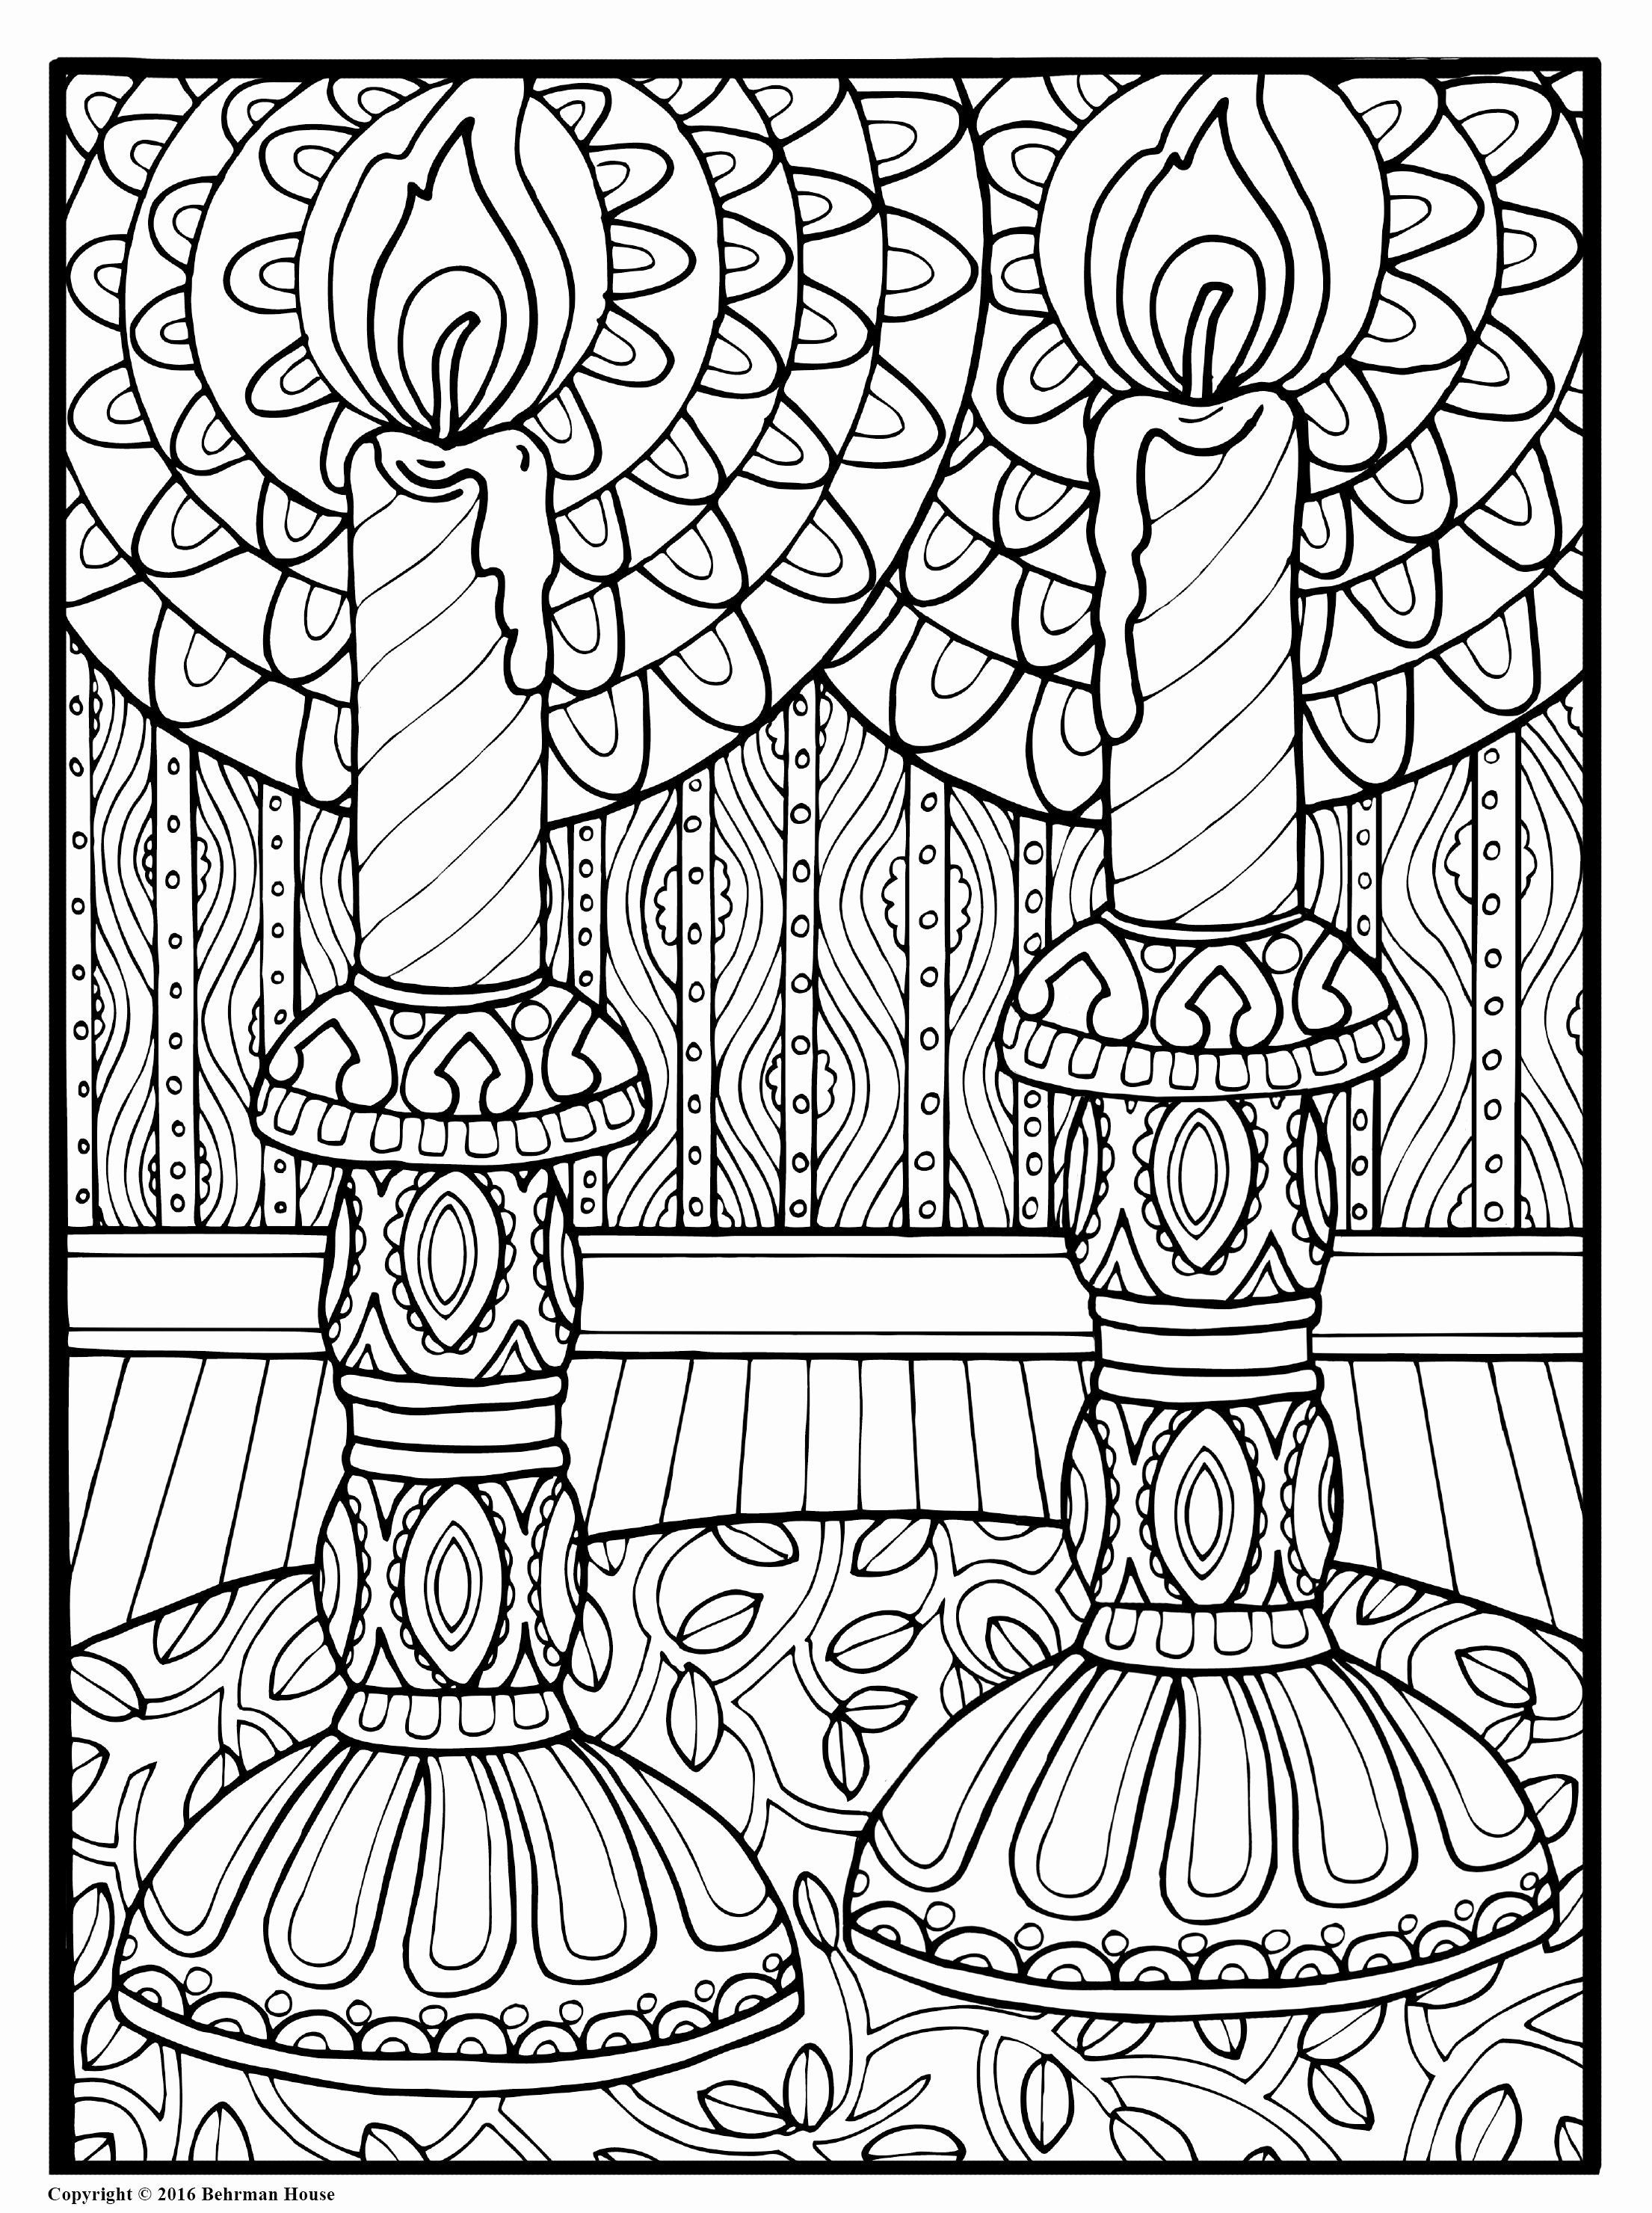 Coloring Meditation Design Lovely 27 Jewish Holiday Coloring Pages Download Coloring Sheets Coloring Books Coloring Pages Adult Coloring Pages